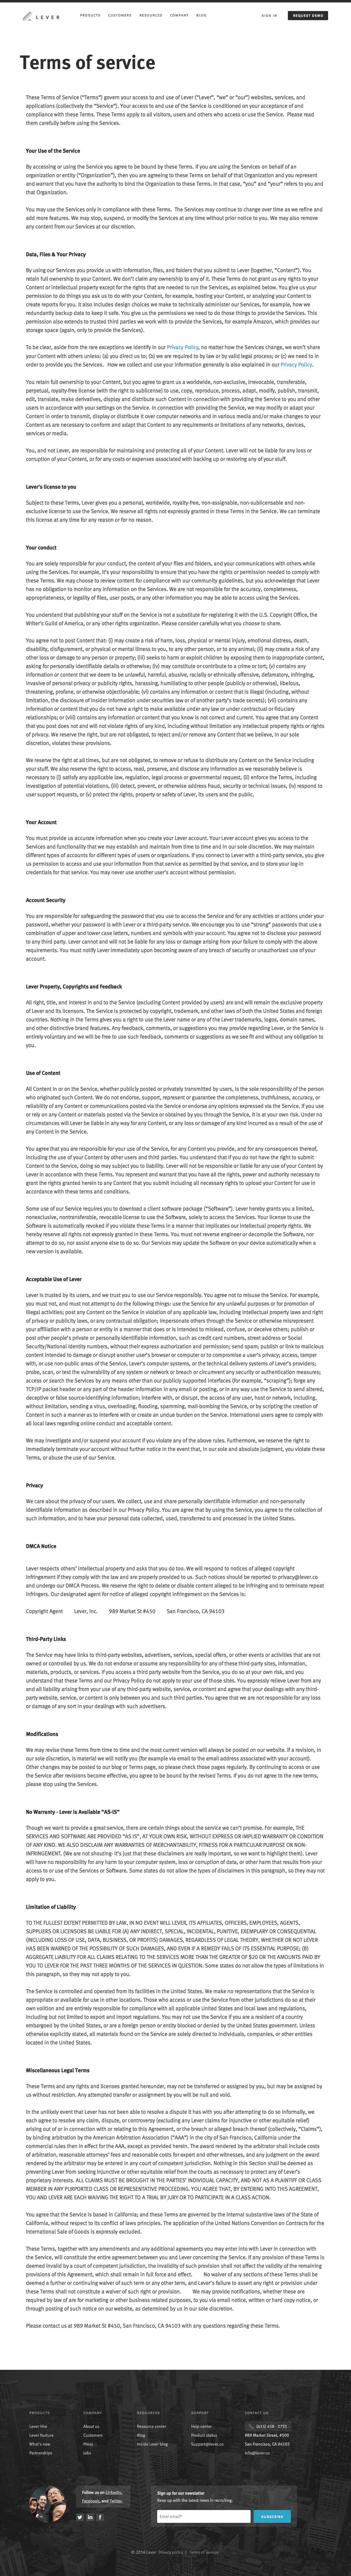 Terms And Conditions Template Generator Free - Terms and conditions template generator